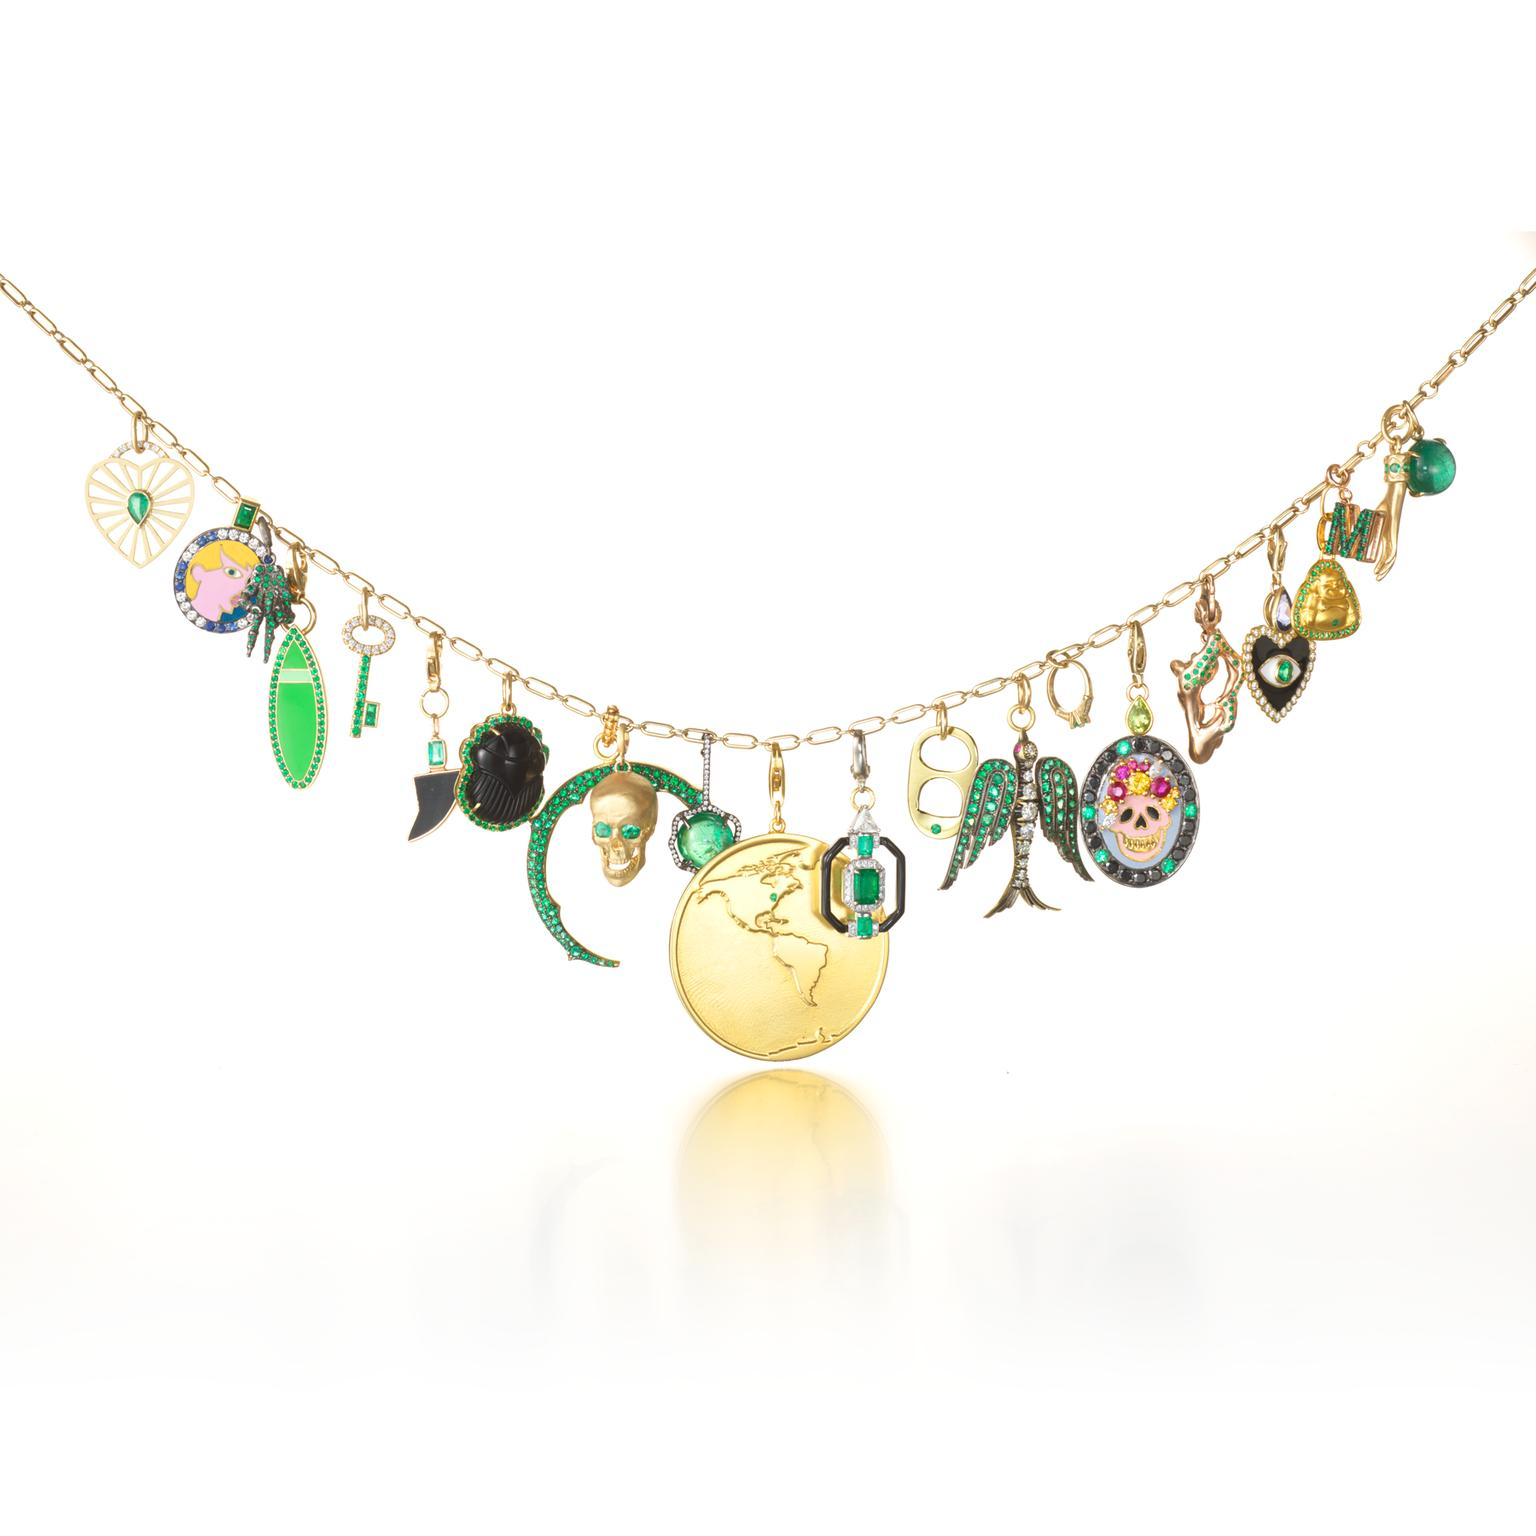 Muse x Gemfields charm necklace with emeralds